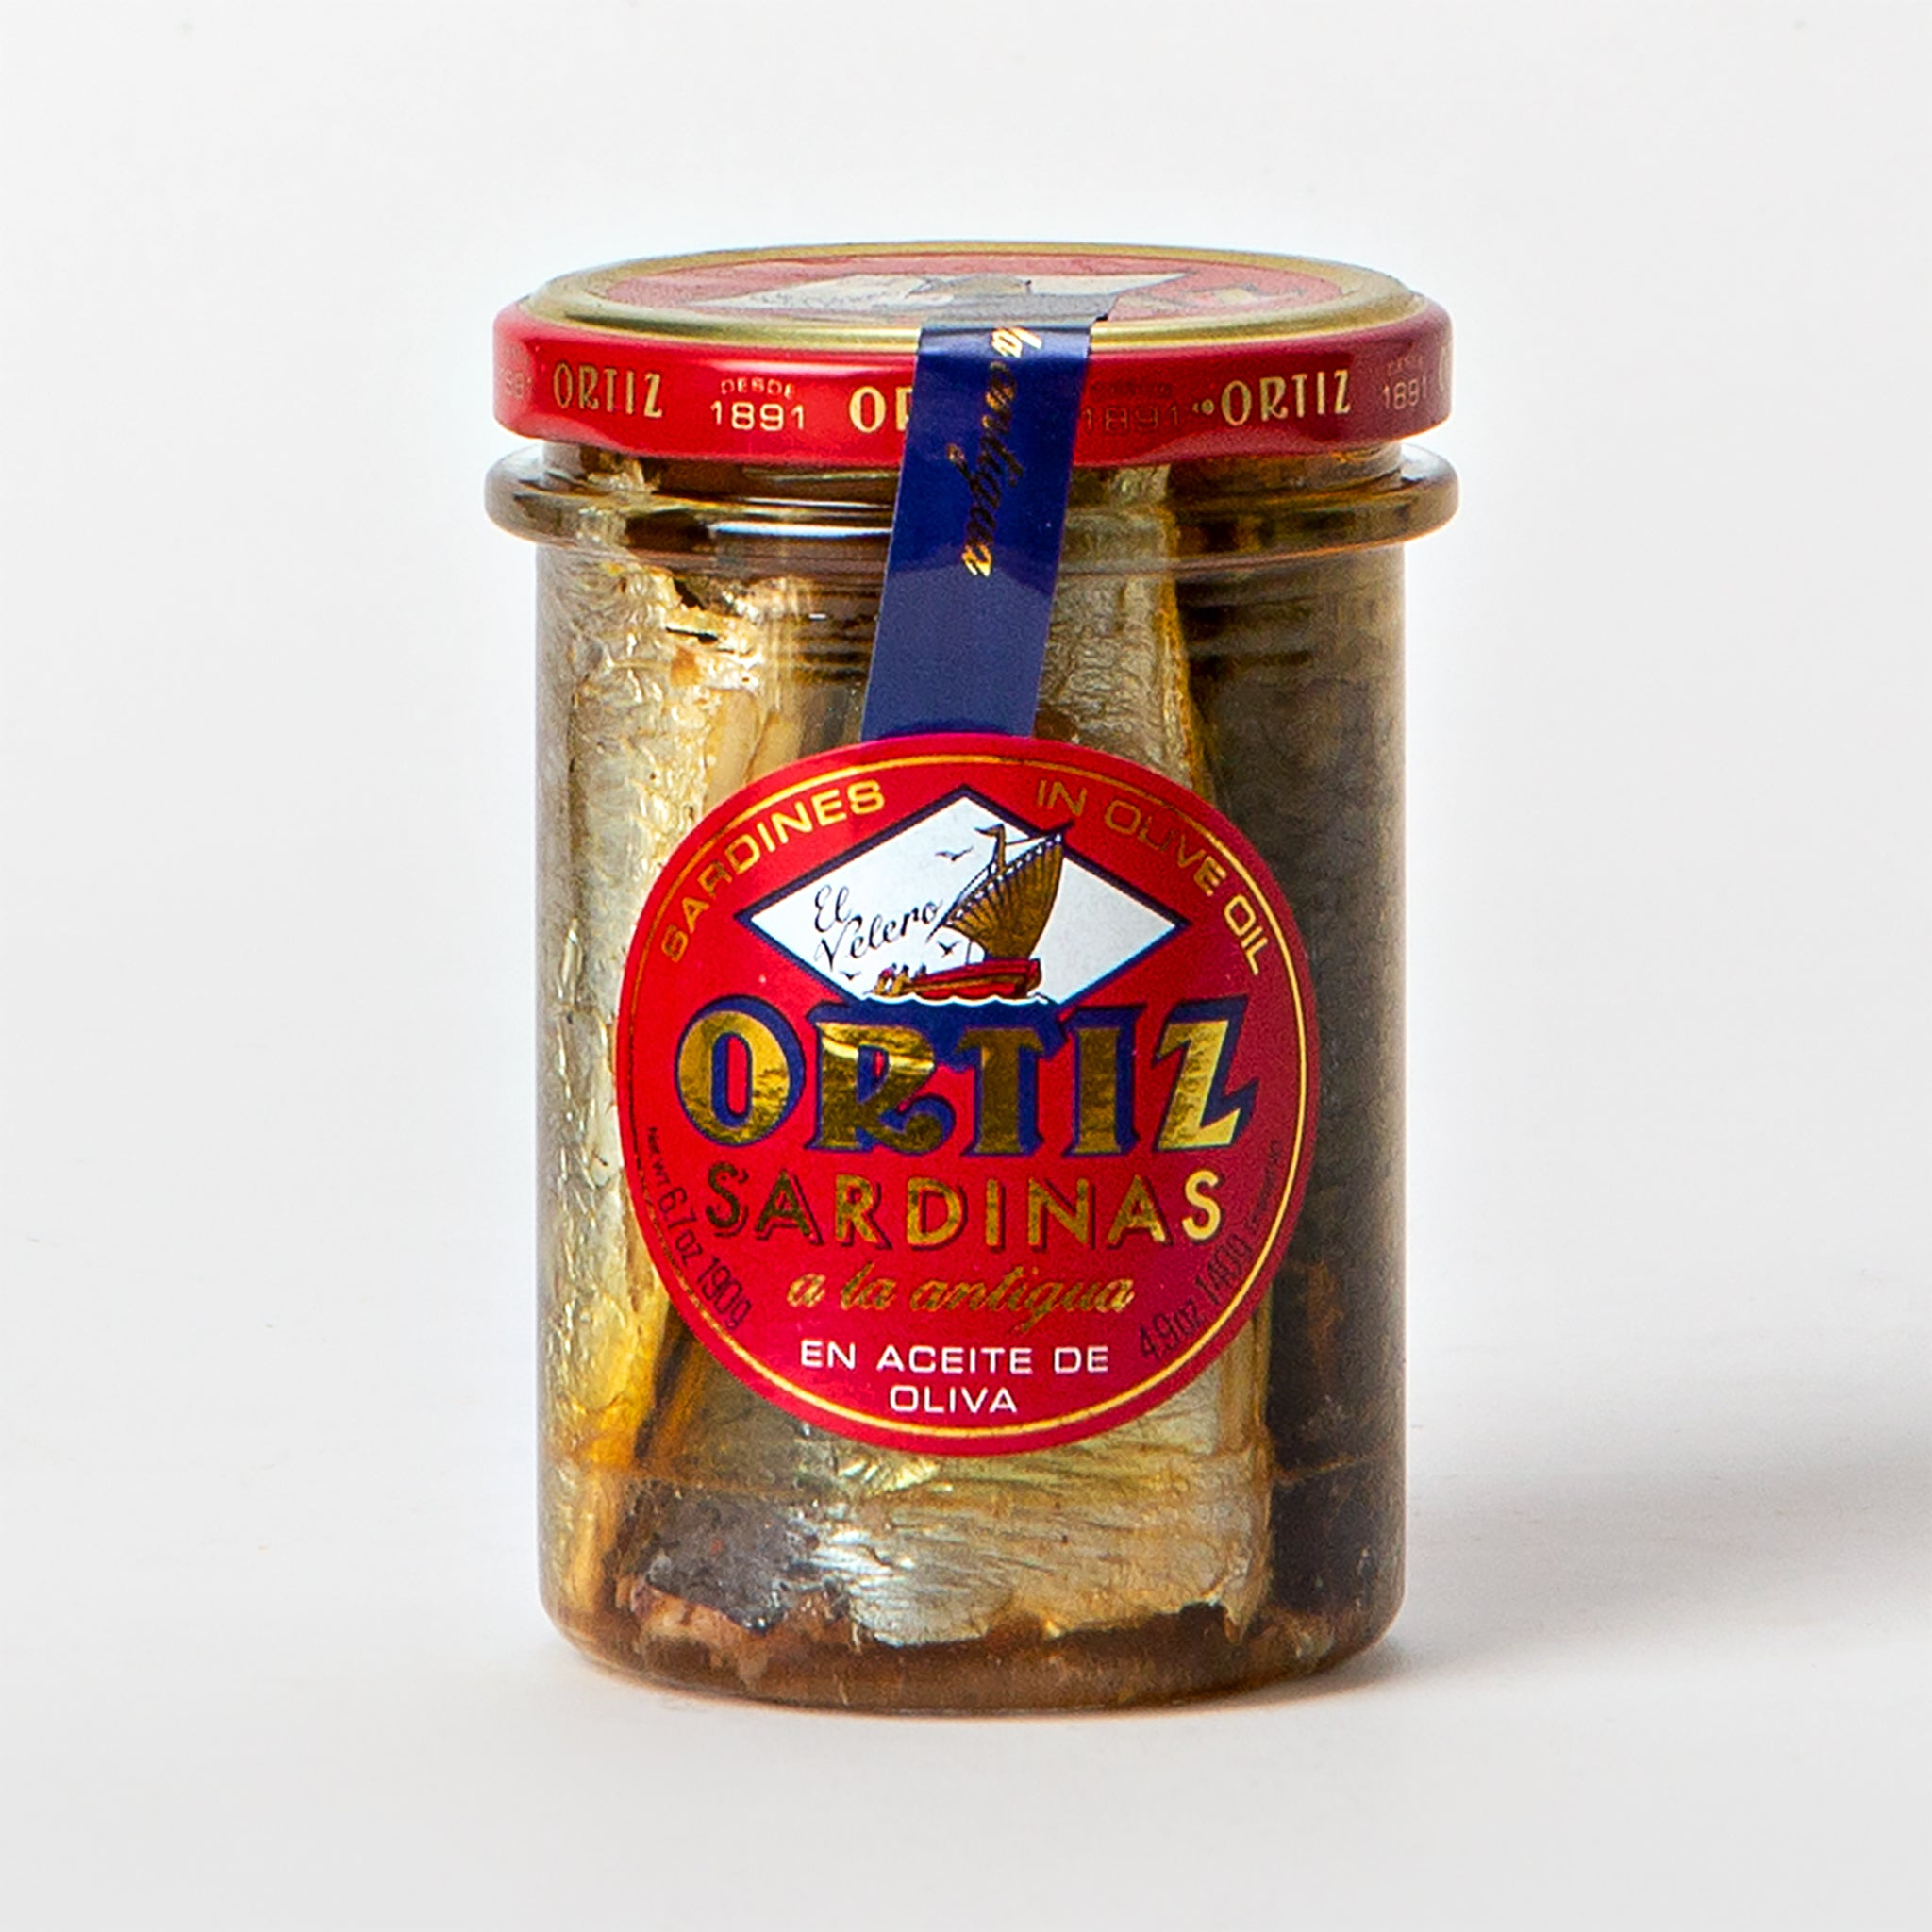 Ortiz Sardines Old Style in Olive Oil